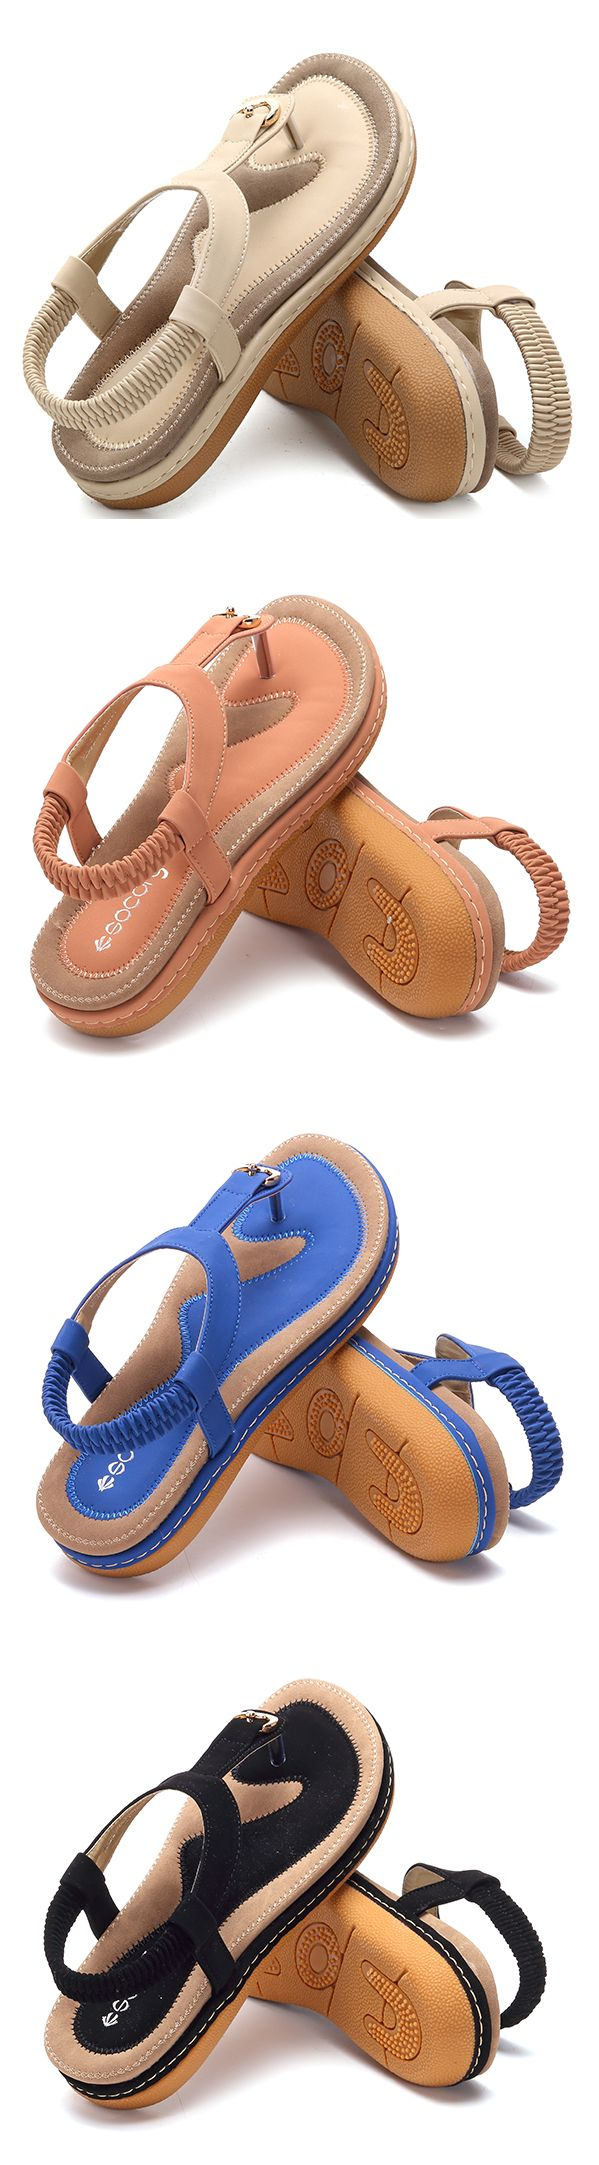 c76b32cc9cf5 SOCOFY Comfortable Elastic Clip Toe Flat Beach Sandals is comfortable to  wear. Shop on NewChic to see other cheap women sandals on sale.